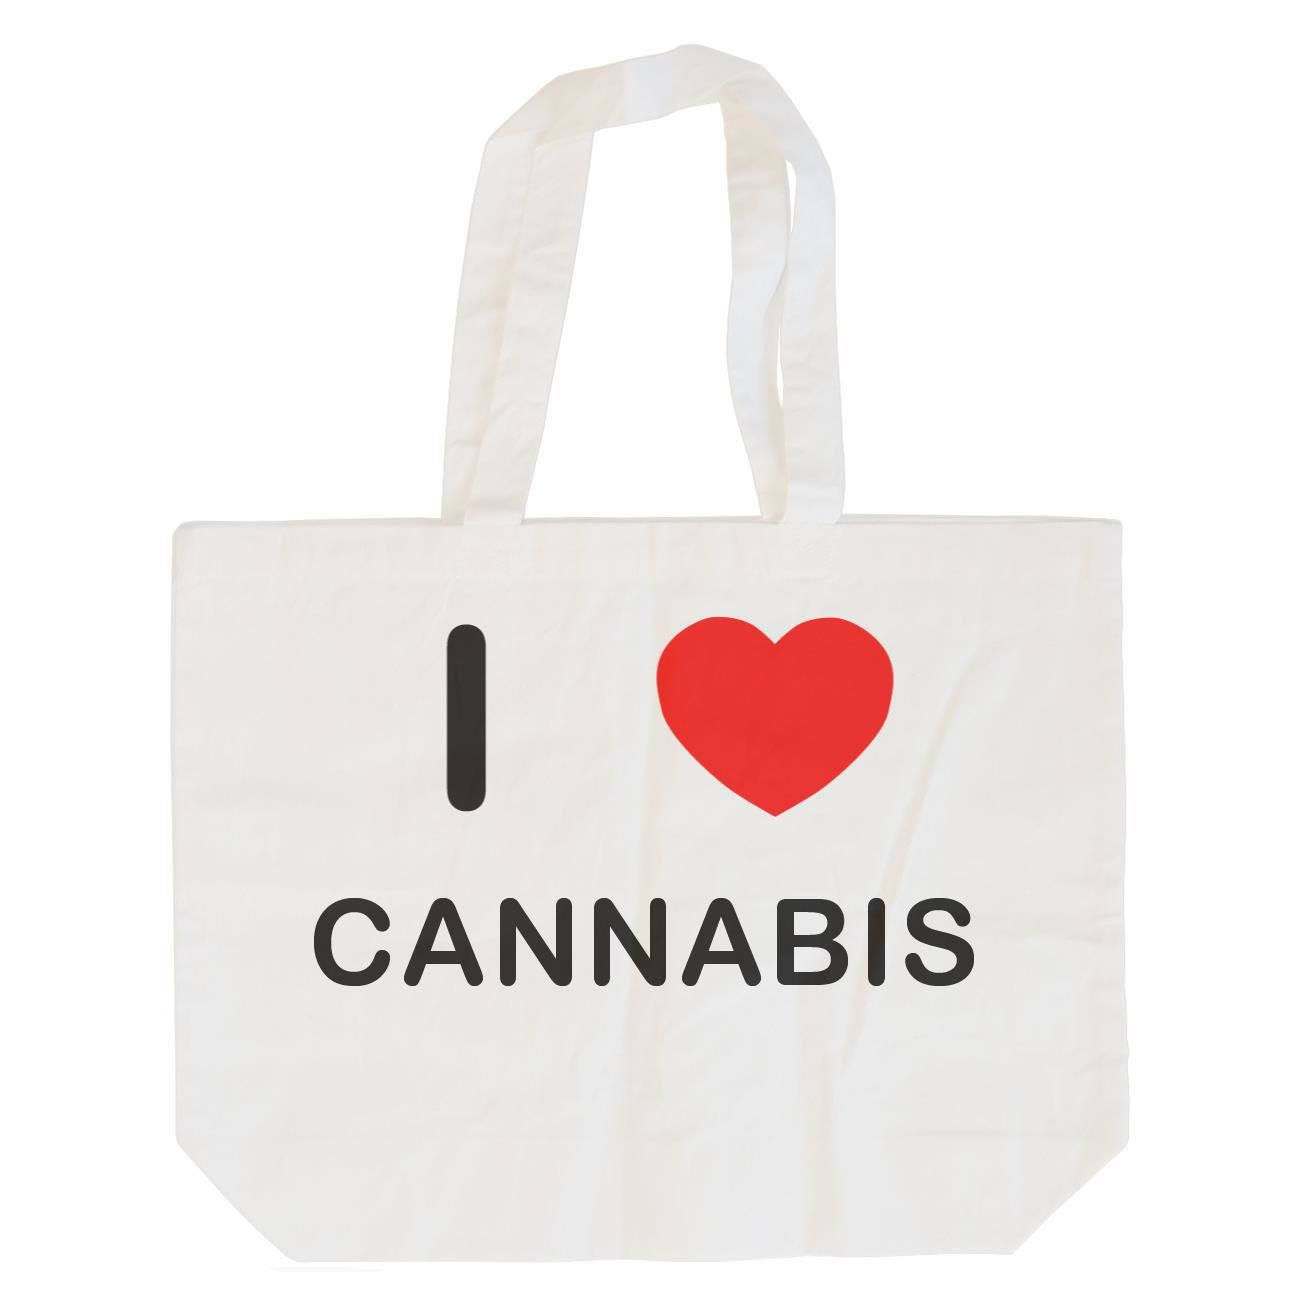 I Love Cannabis - Cotton Bag | Size choice Tote, Shopper or Sling